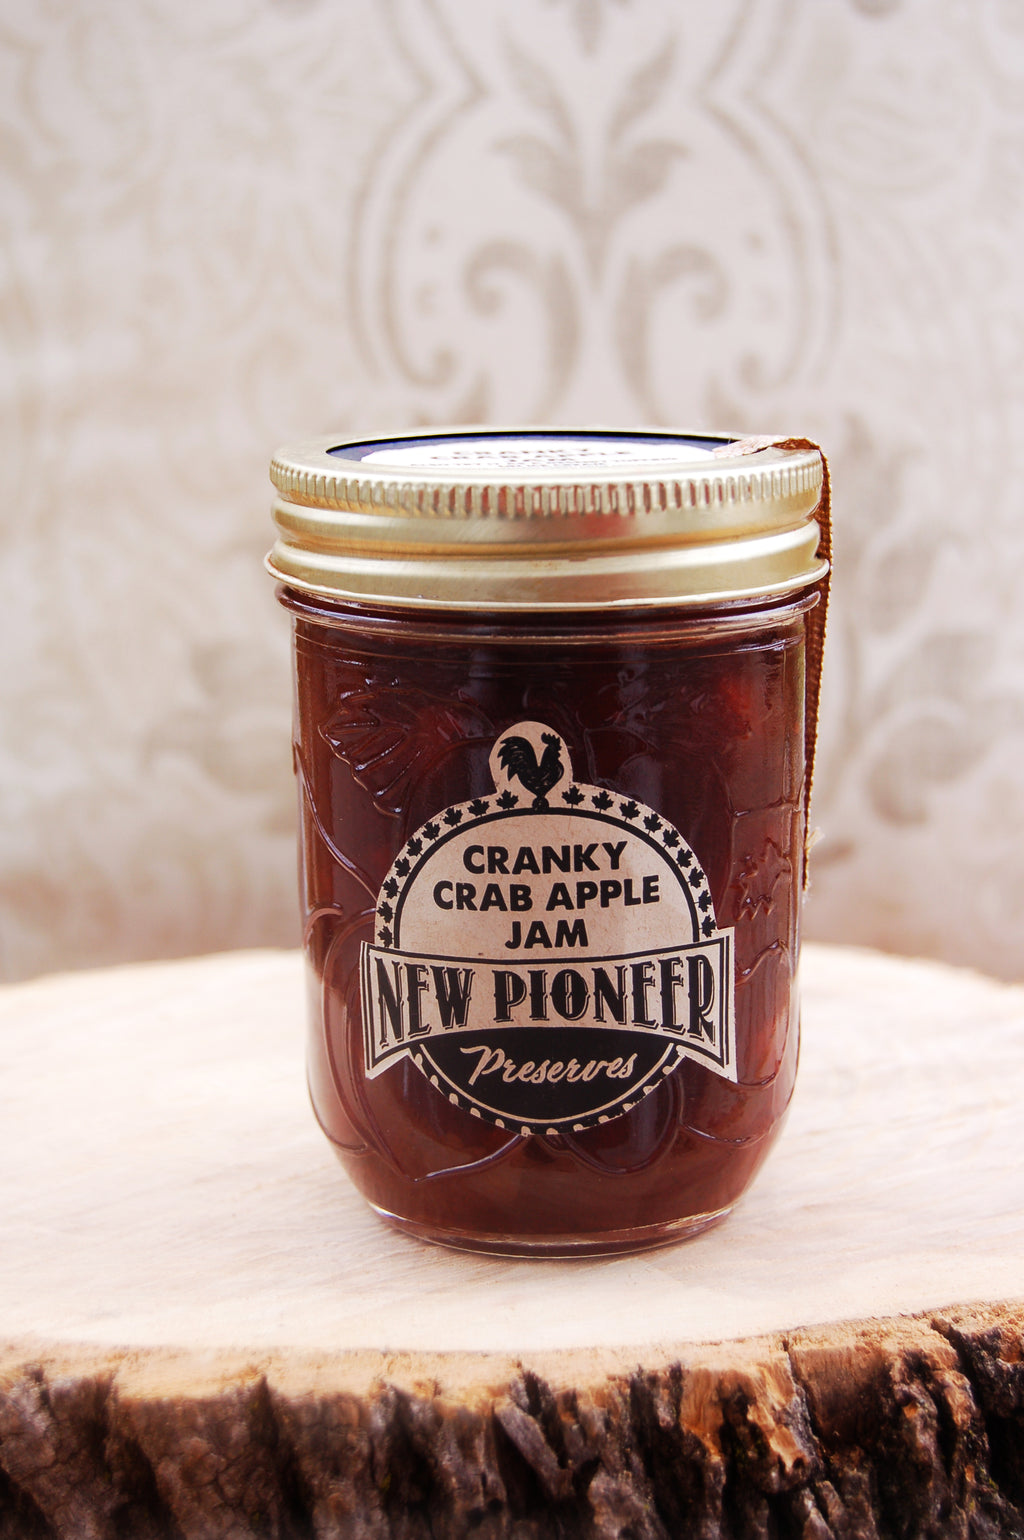 Cranky Crab Apple Jam